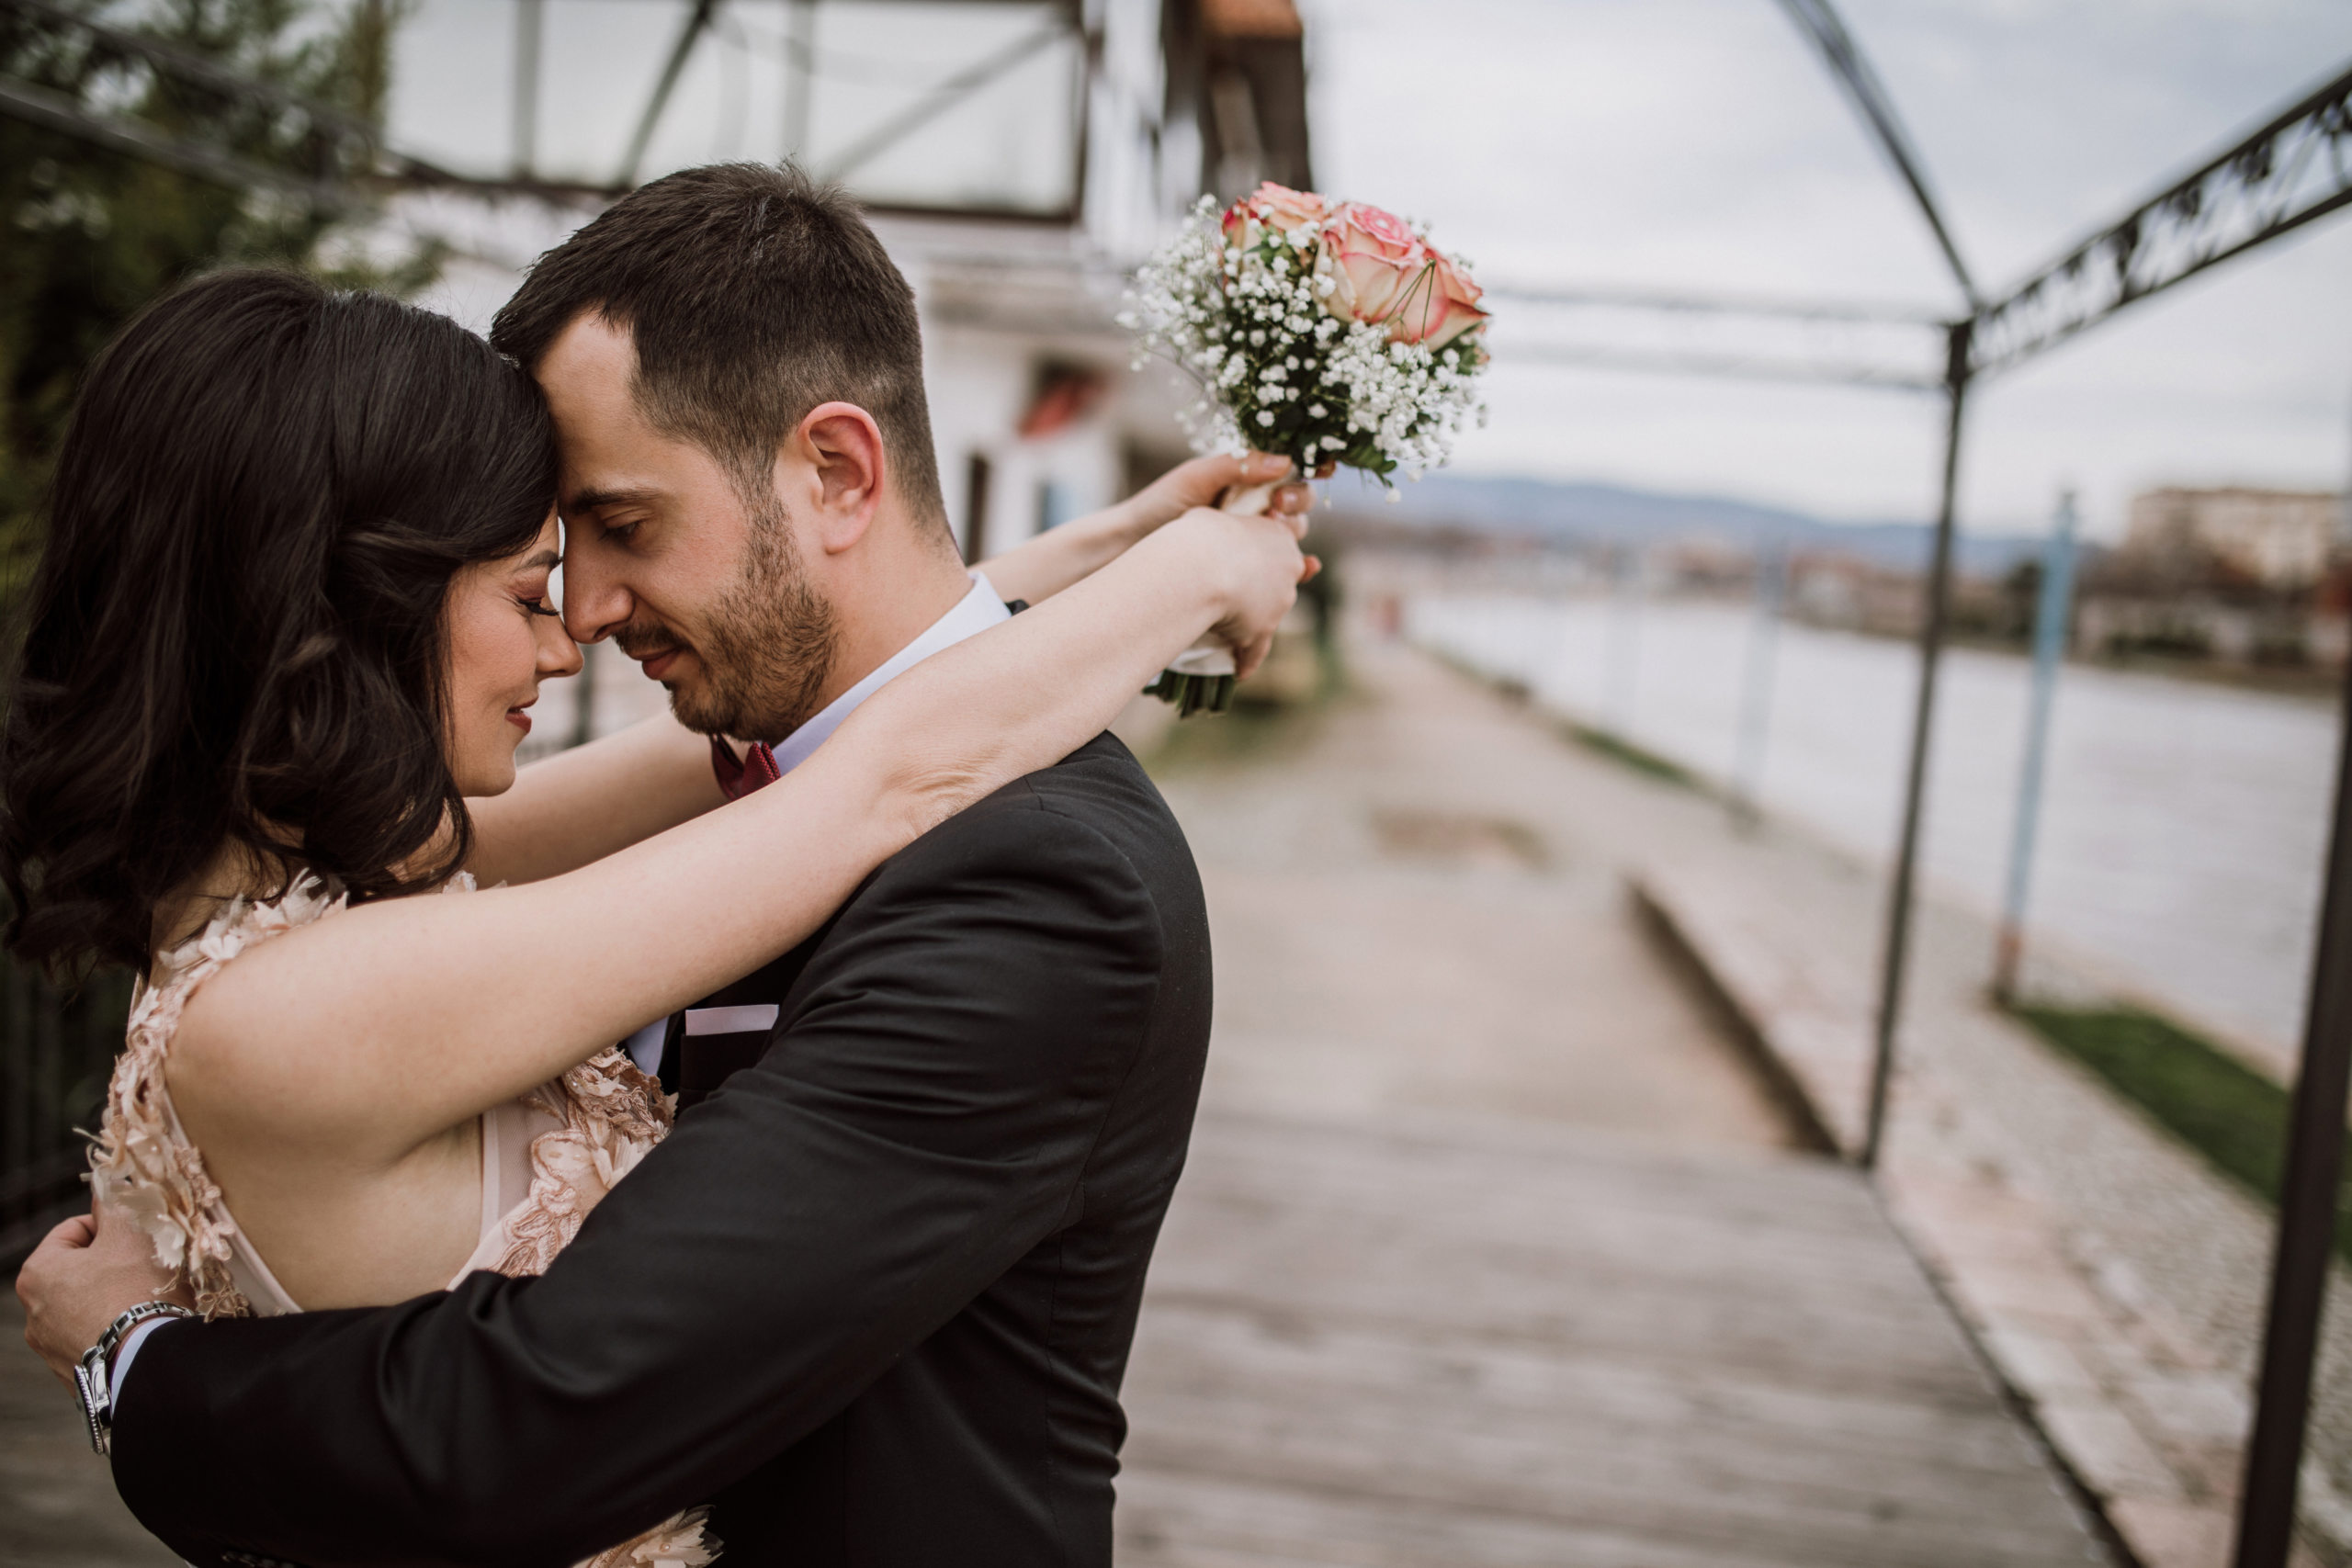 What You Need To Know About Wedding Insurance